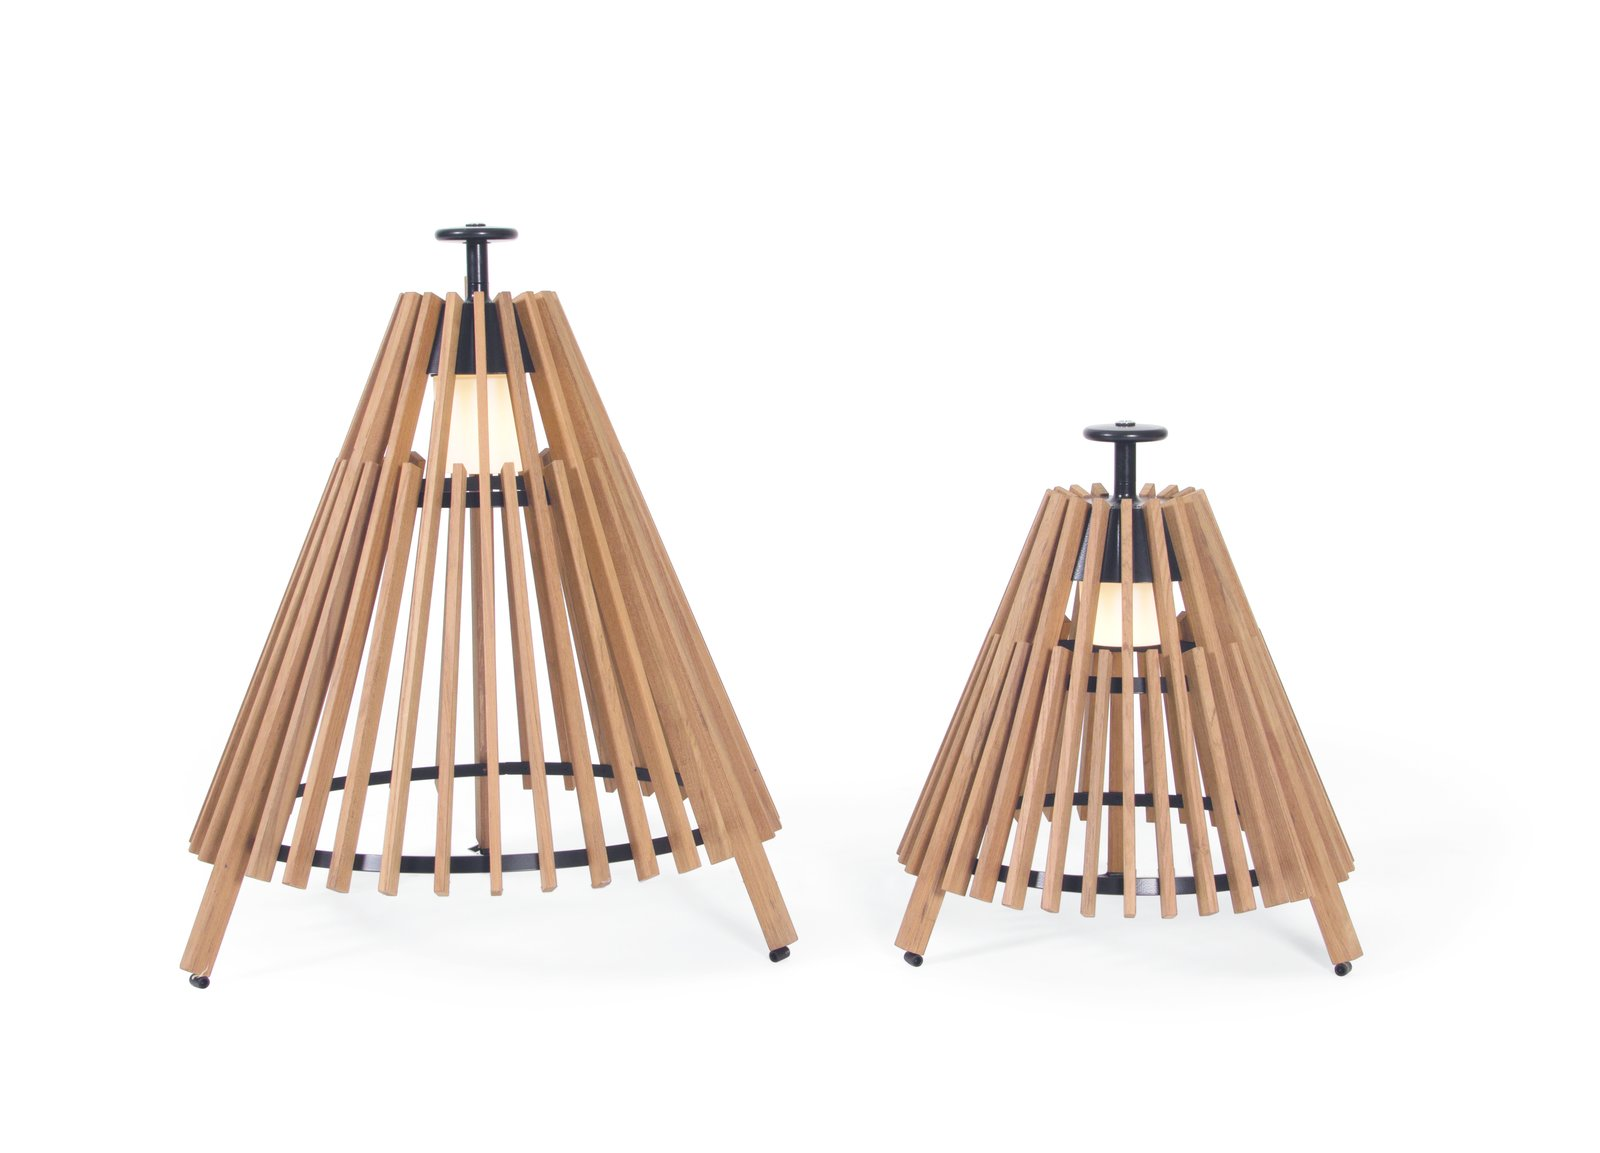 Leisure furniture producer Skargaarden has collaborated with Swedish lighting designers Mårten och Gustav Cyrén at company Atelje Lyktan to create the Tipi lamp for outdoor use. The tent-like shape is made in teak and stainless steel with an aluminum handle.  On the Scene at Stockholm Design Week 2013 by Marianne Johnsgård